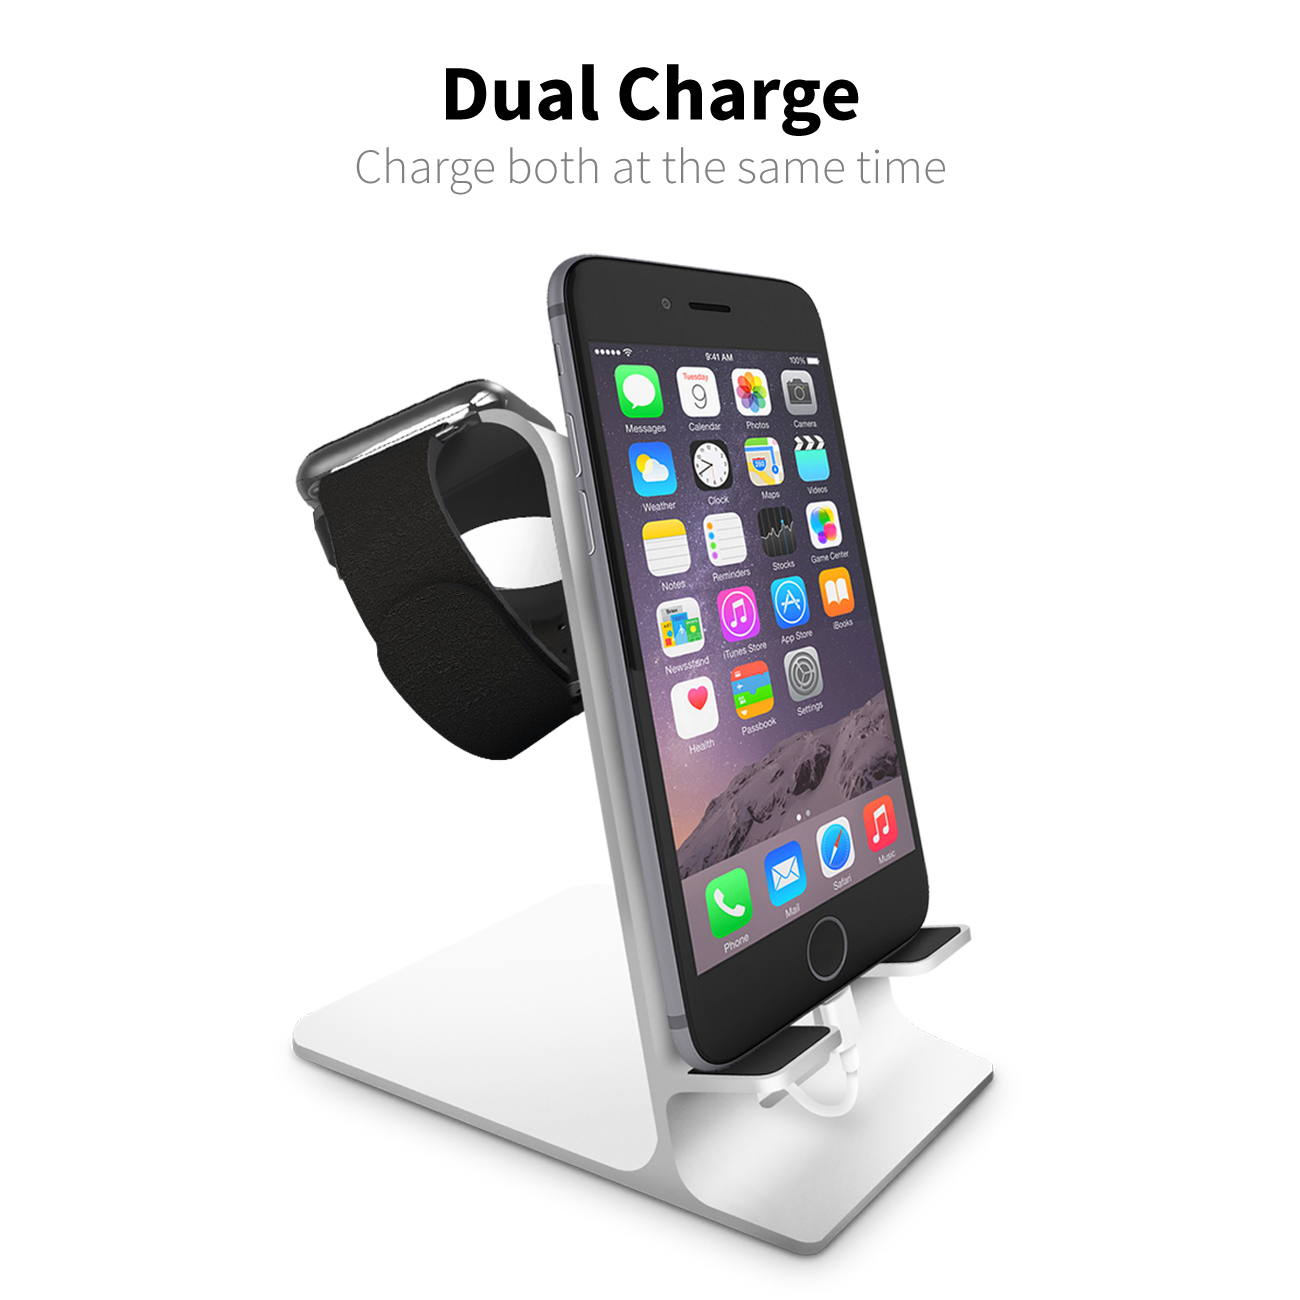 samsung phone apple itm iphone foldable folding for phones cradle desk stand holder plus cell mini